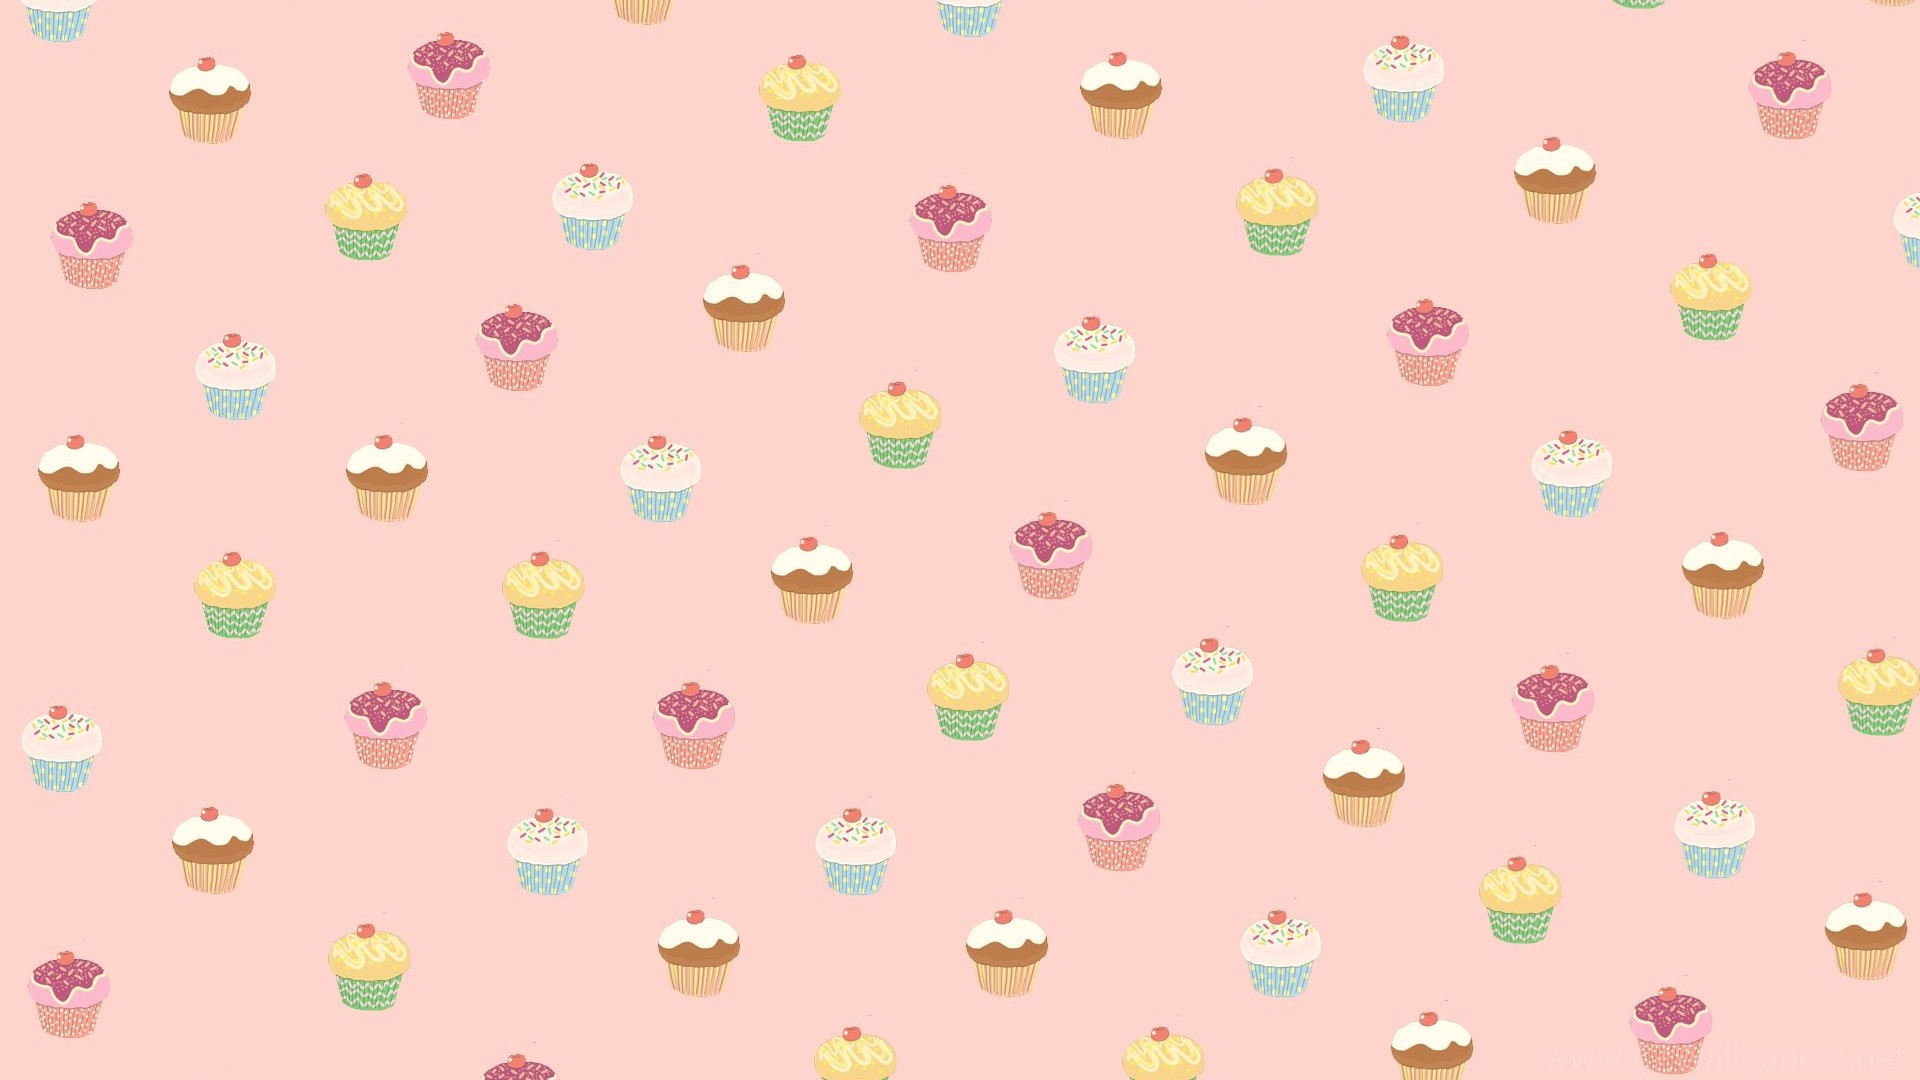 Cupcake Wallpaper theme